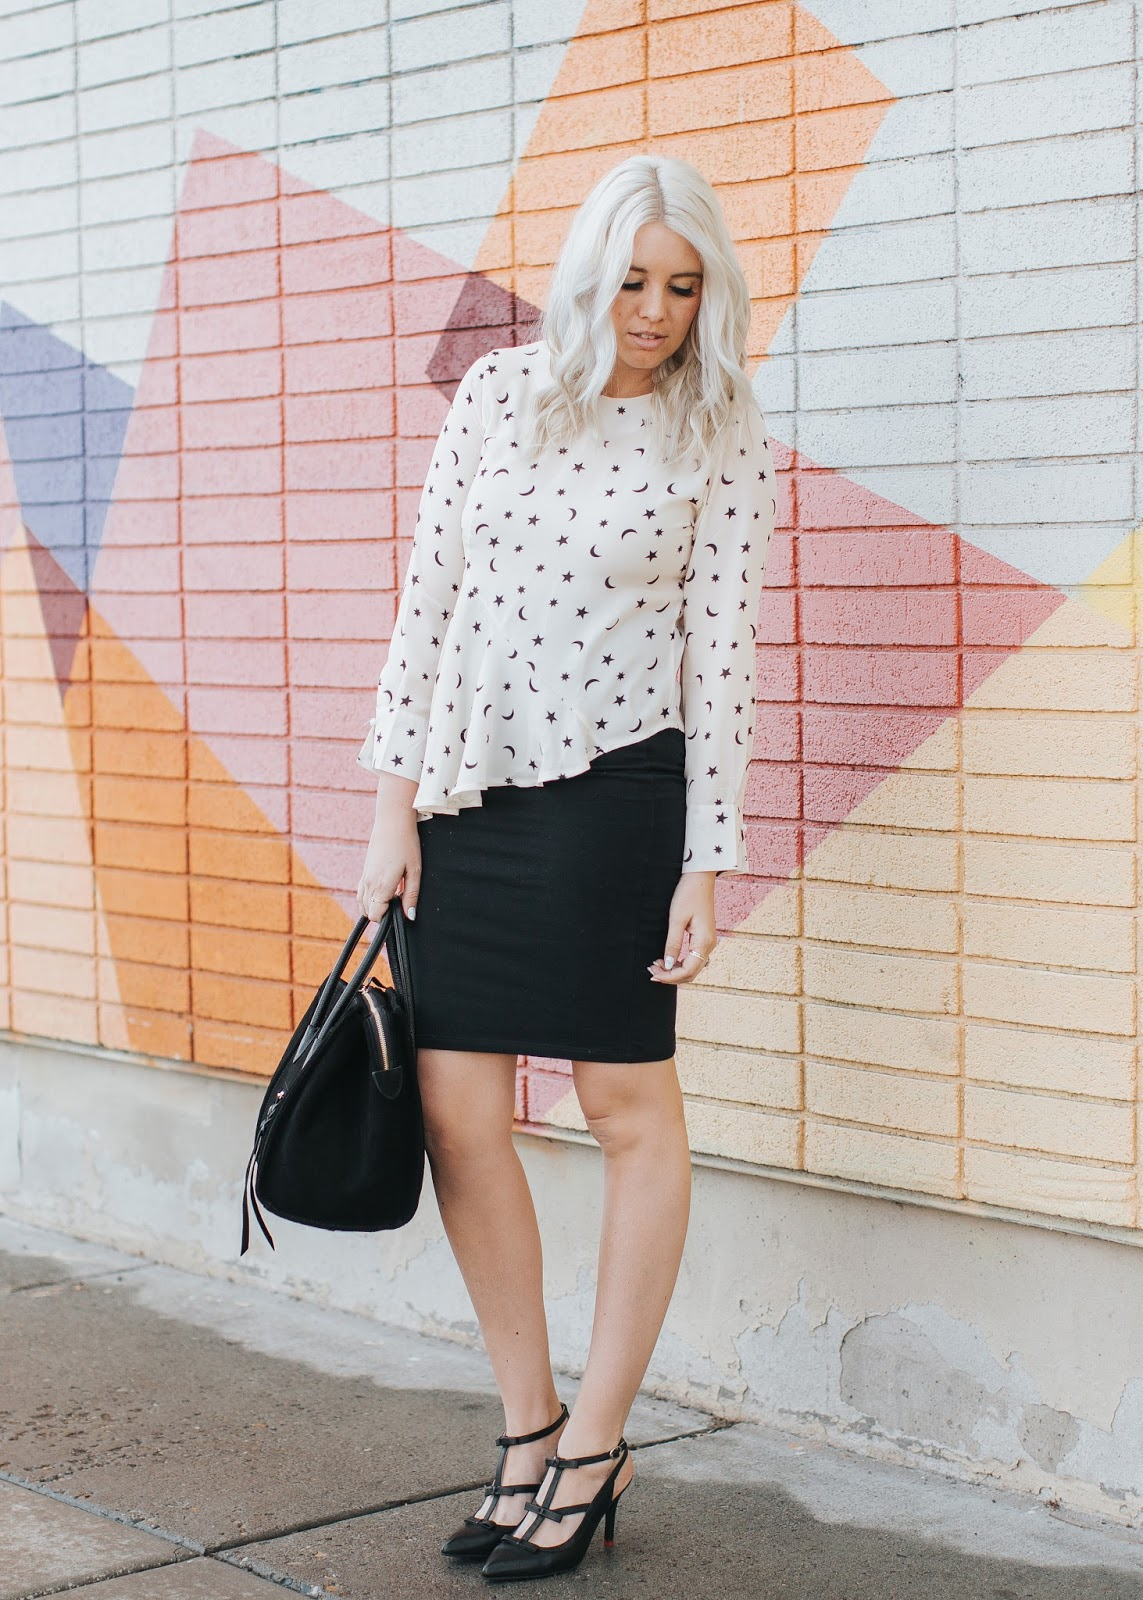 Platinum Hair, Utah Fashion Blogger, Peplum Top